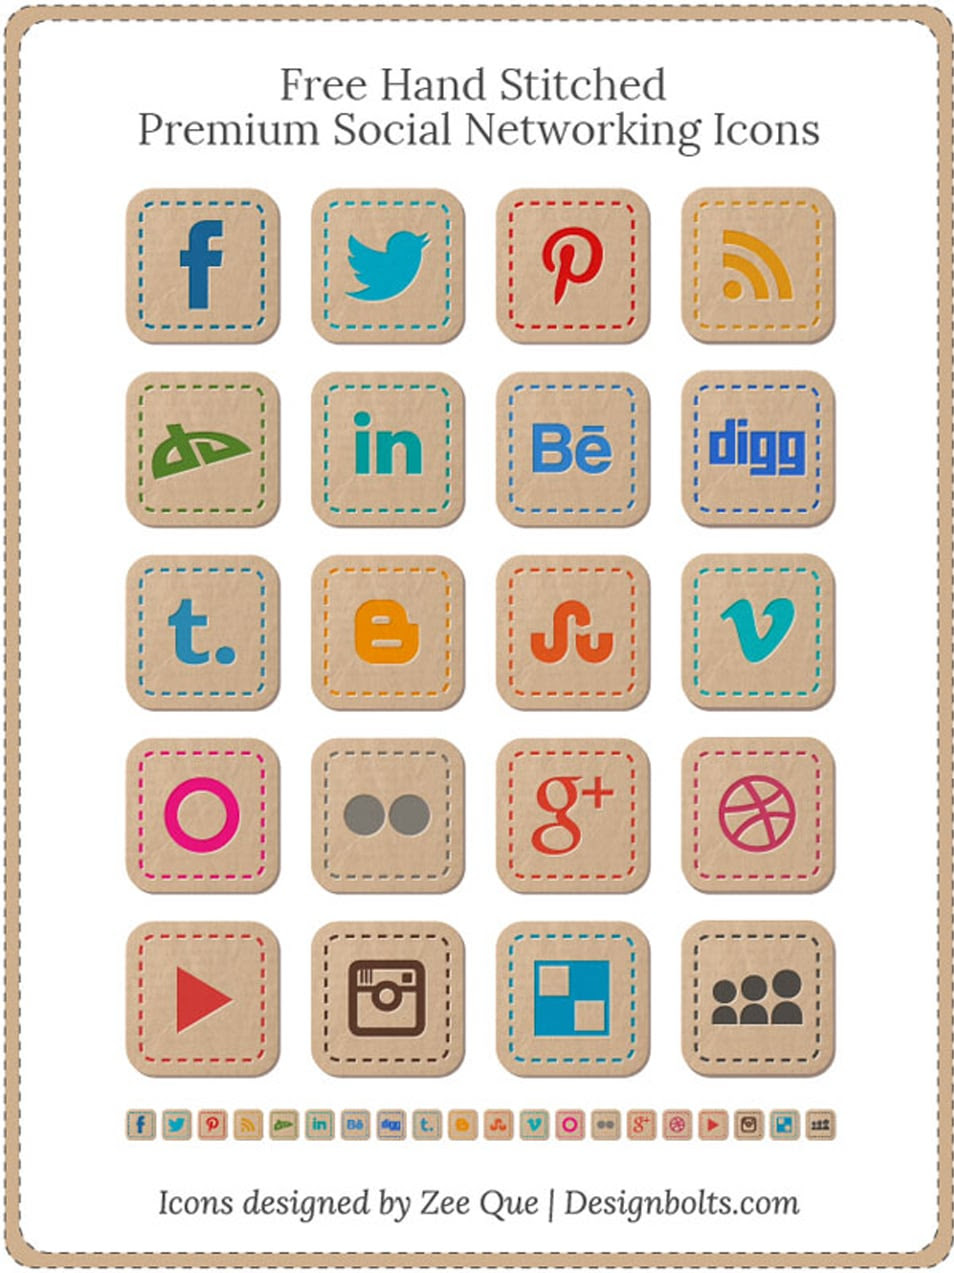 Free Hand Stitched Premium Social Networking Icons